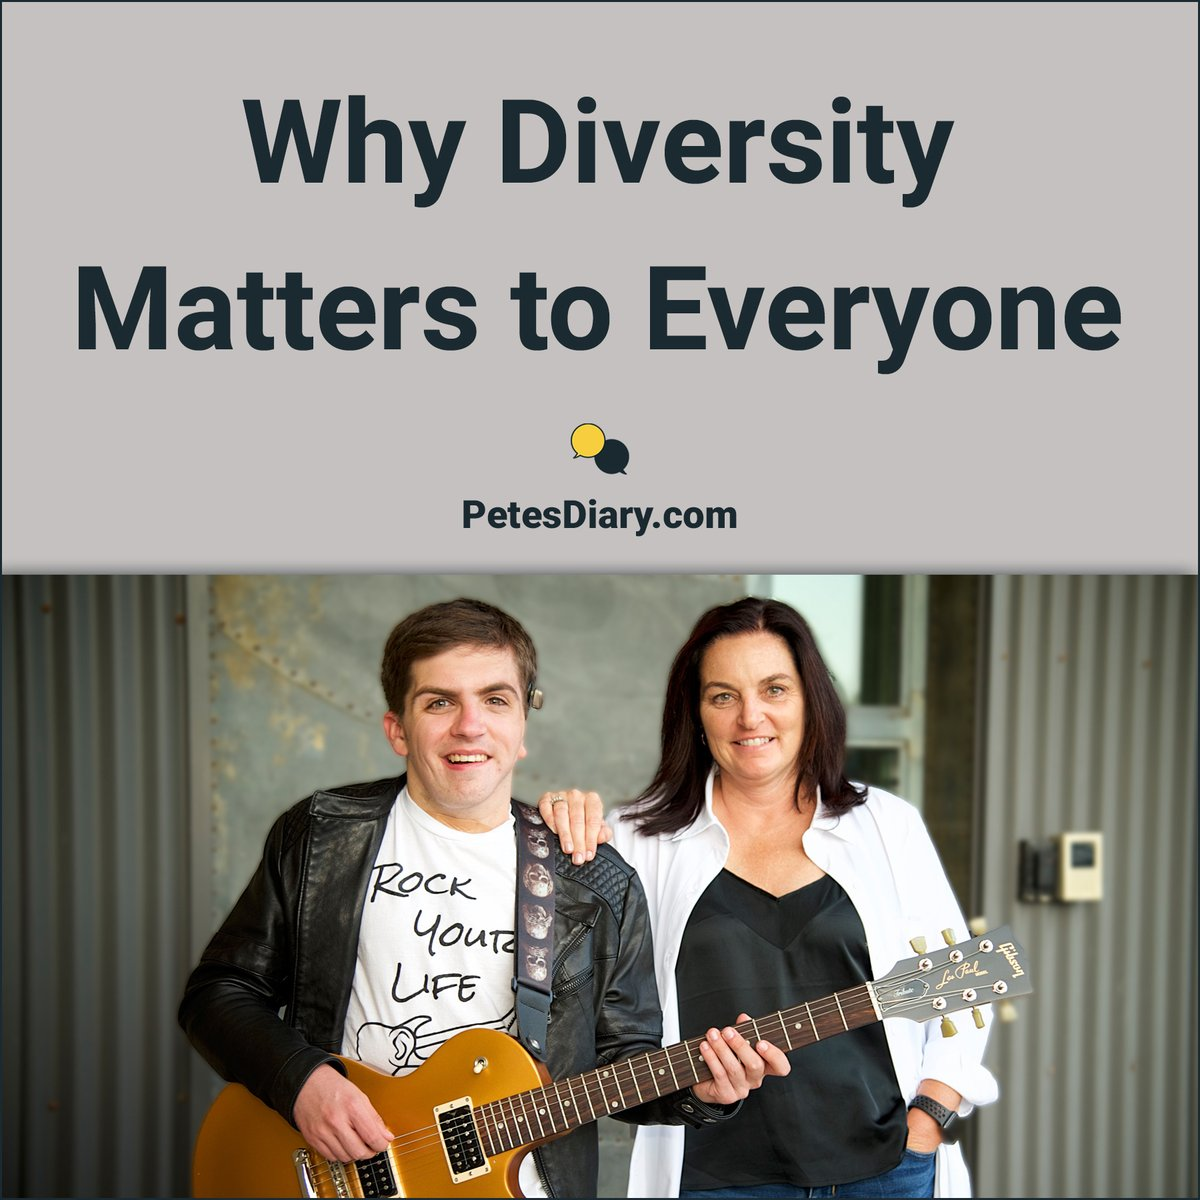 Society moves in a positive direction when we communicate with the intent to understand different viewpoints.  That's why #diversitymatters to everyone.  Read more here  https://www. petesdiary.com/post/diversity -matters-to-everyone  …  #empathy #teaching #growthmindset #positivechange <br>http://pic.twitter.com/gkNUPzA50j